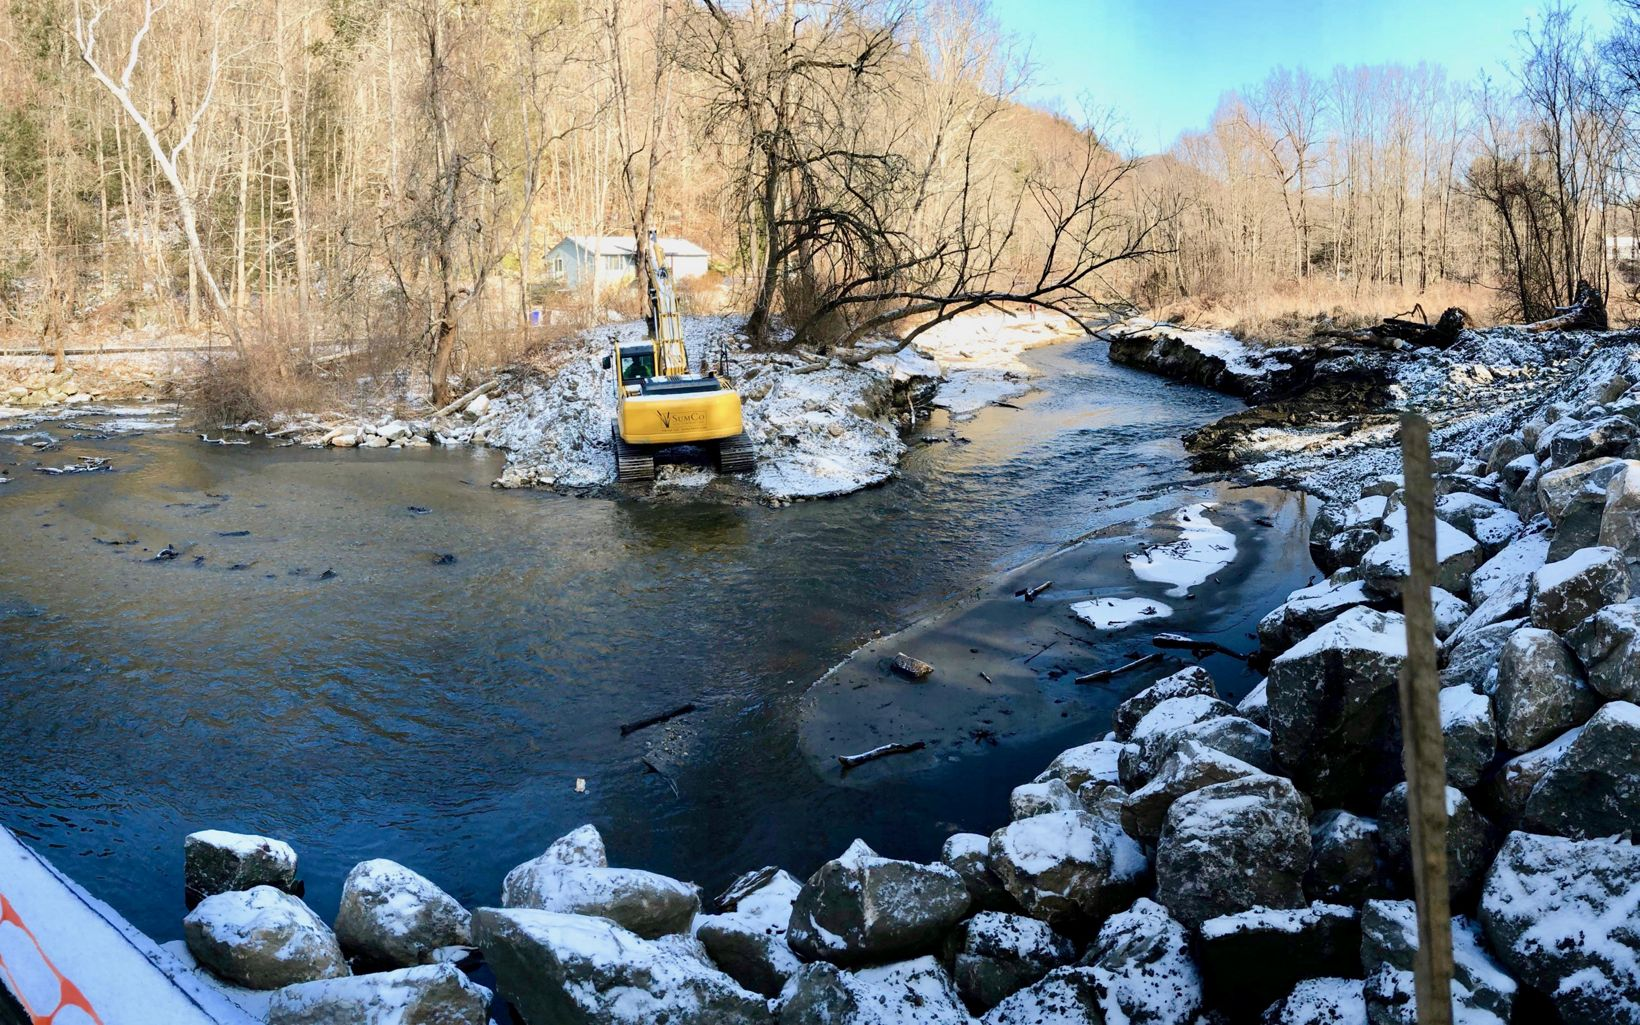 With removal nearly complete, work begins on stream banks and habitat features.